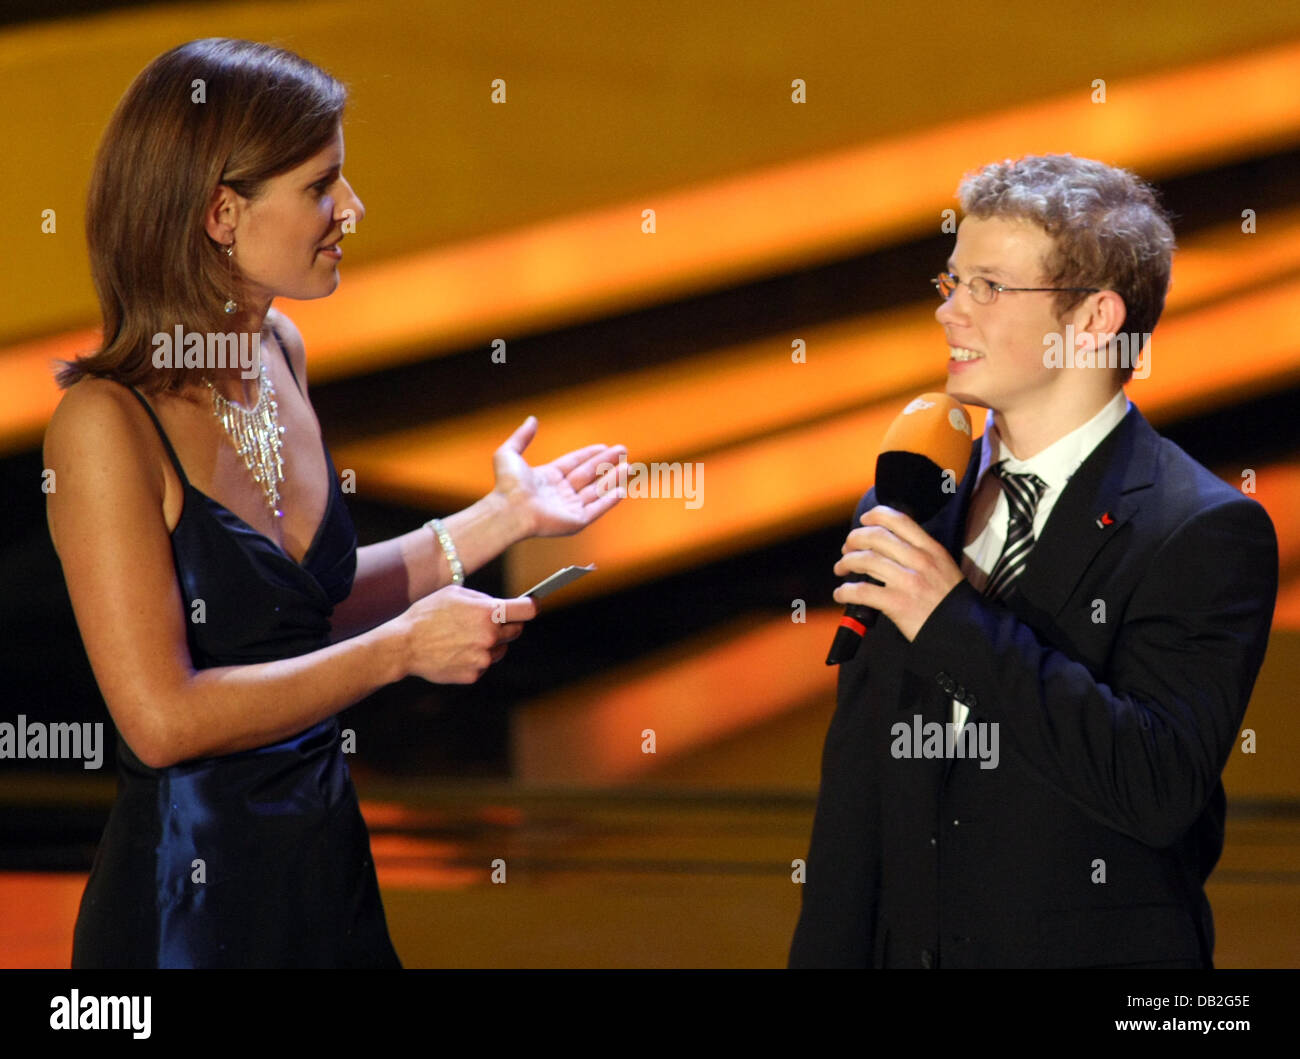 tv presenter of 39 zdf 39 channel and the evening 39 s host katrin stock photo 58448922 alamy